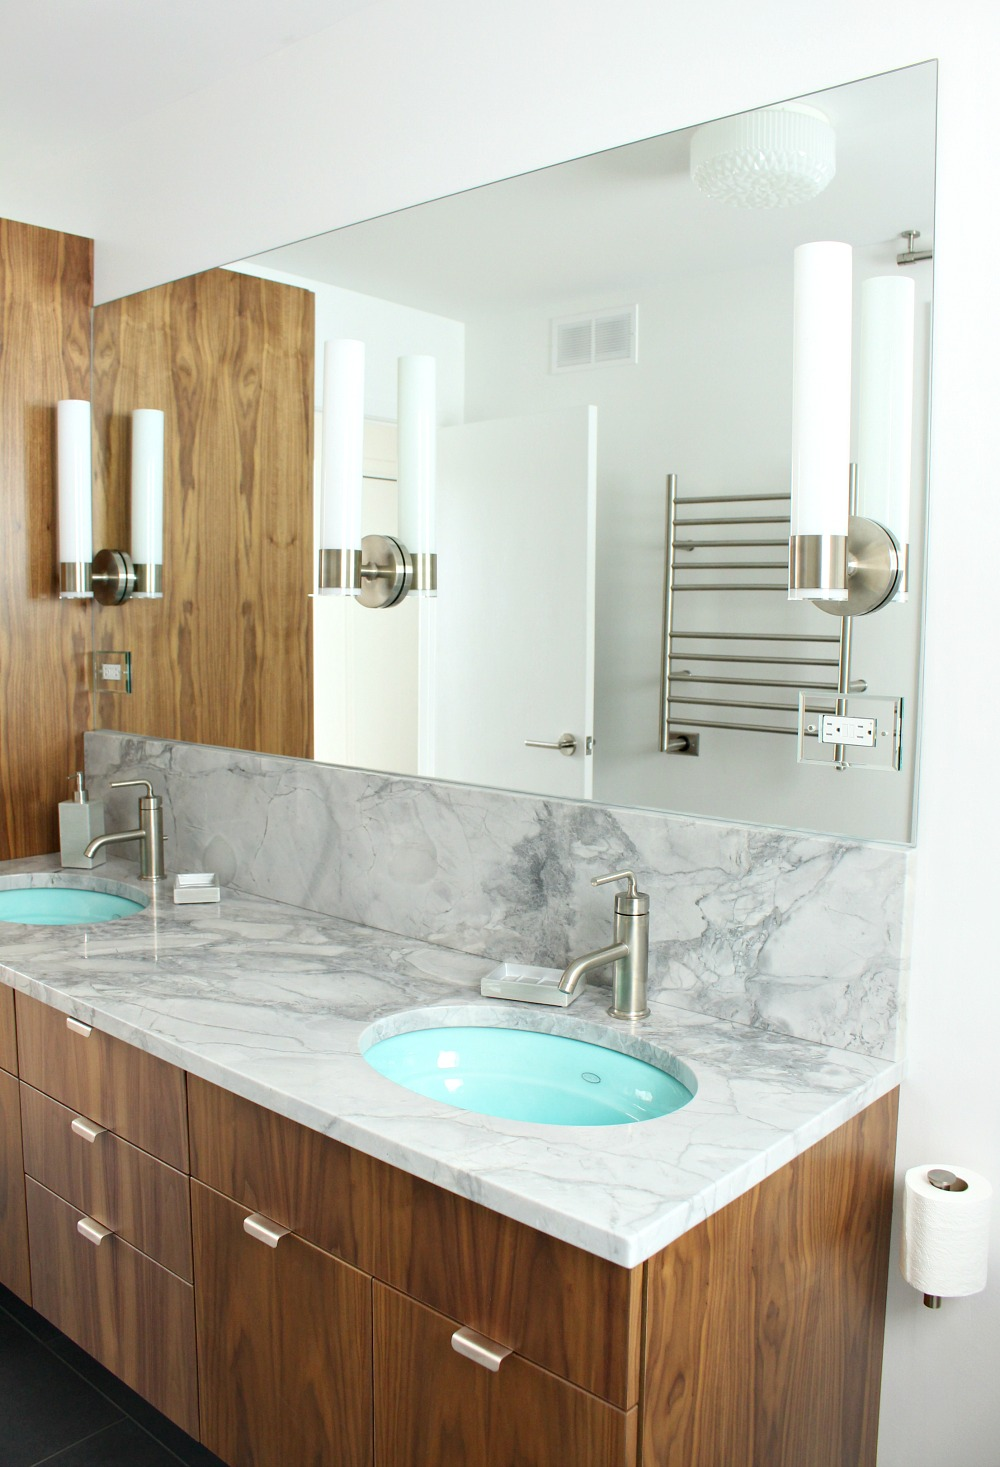 Bathroom Update: Kohler Purist Sconces Mounted on a Sheet Mirror Dans le Lakehouse